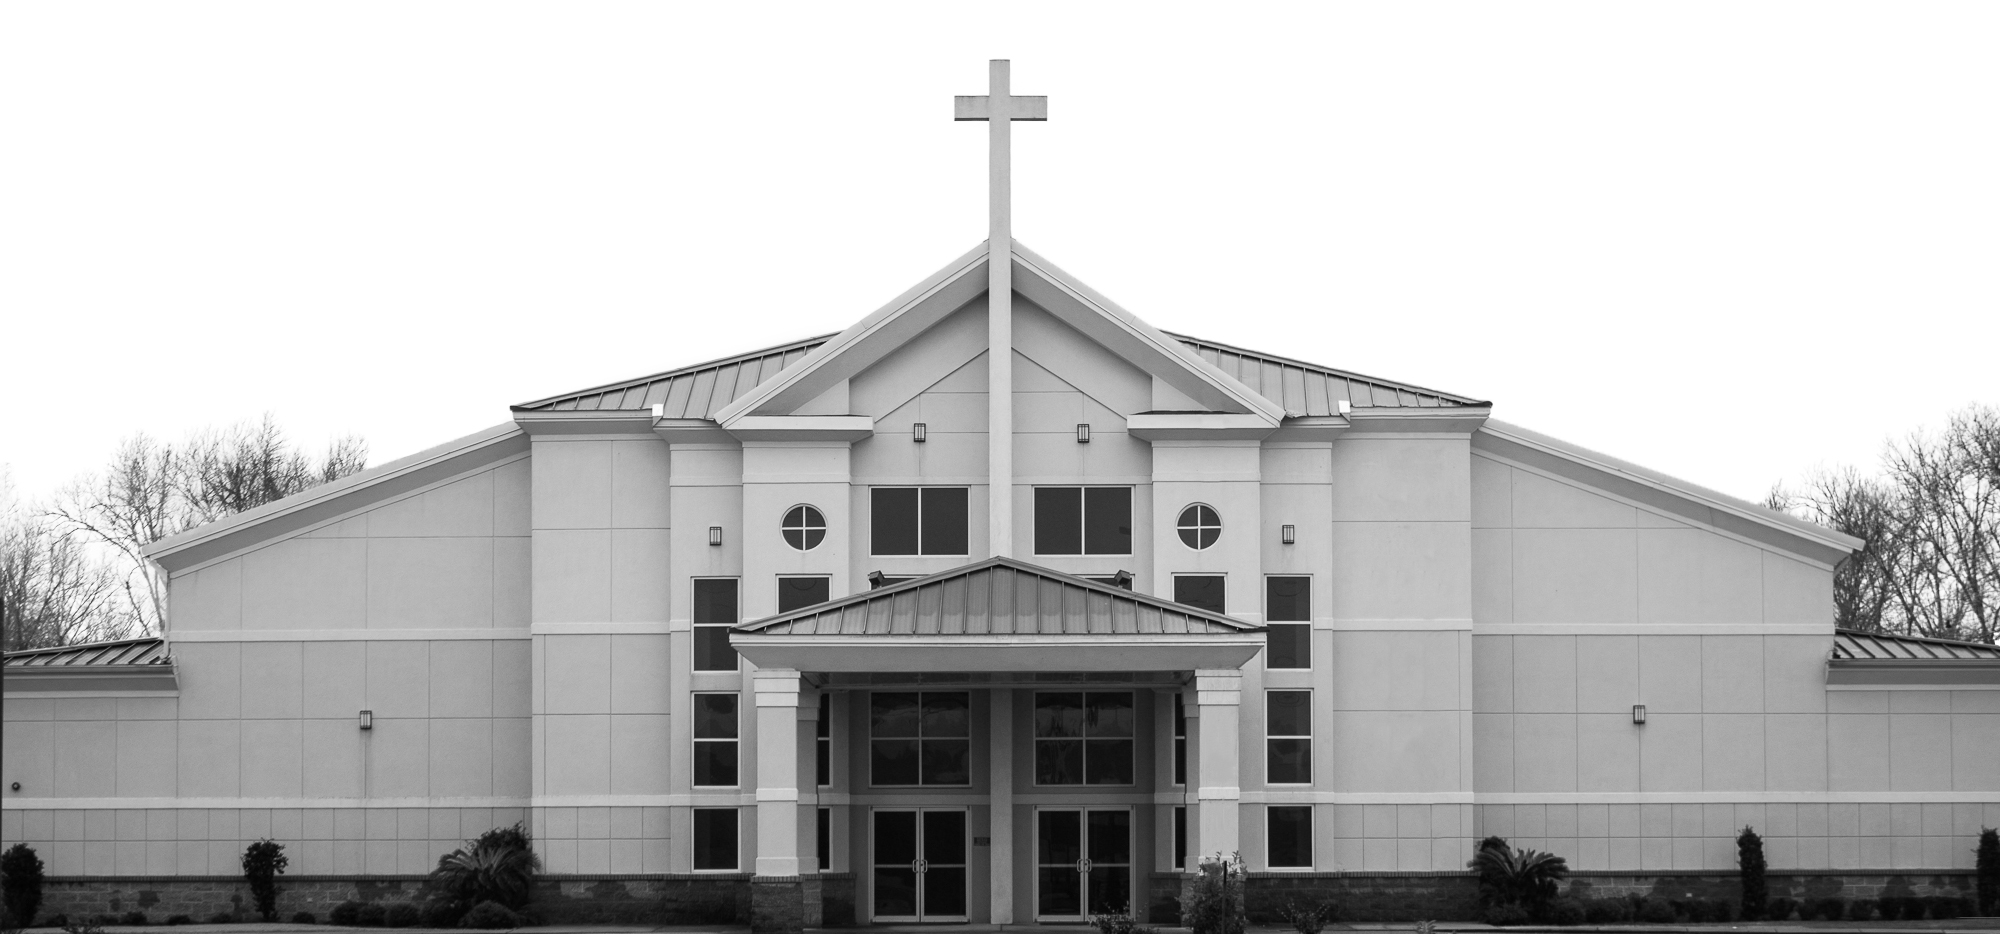 Front entrance of Jubilee Baptist Church in Daphne, Alabama.